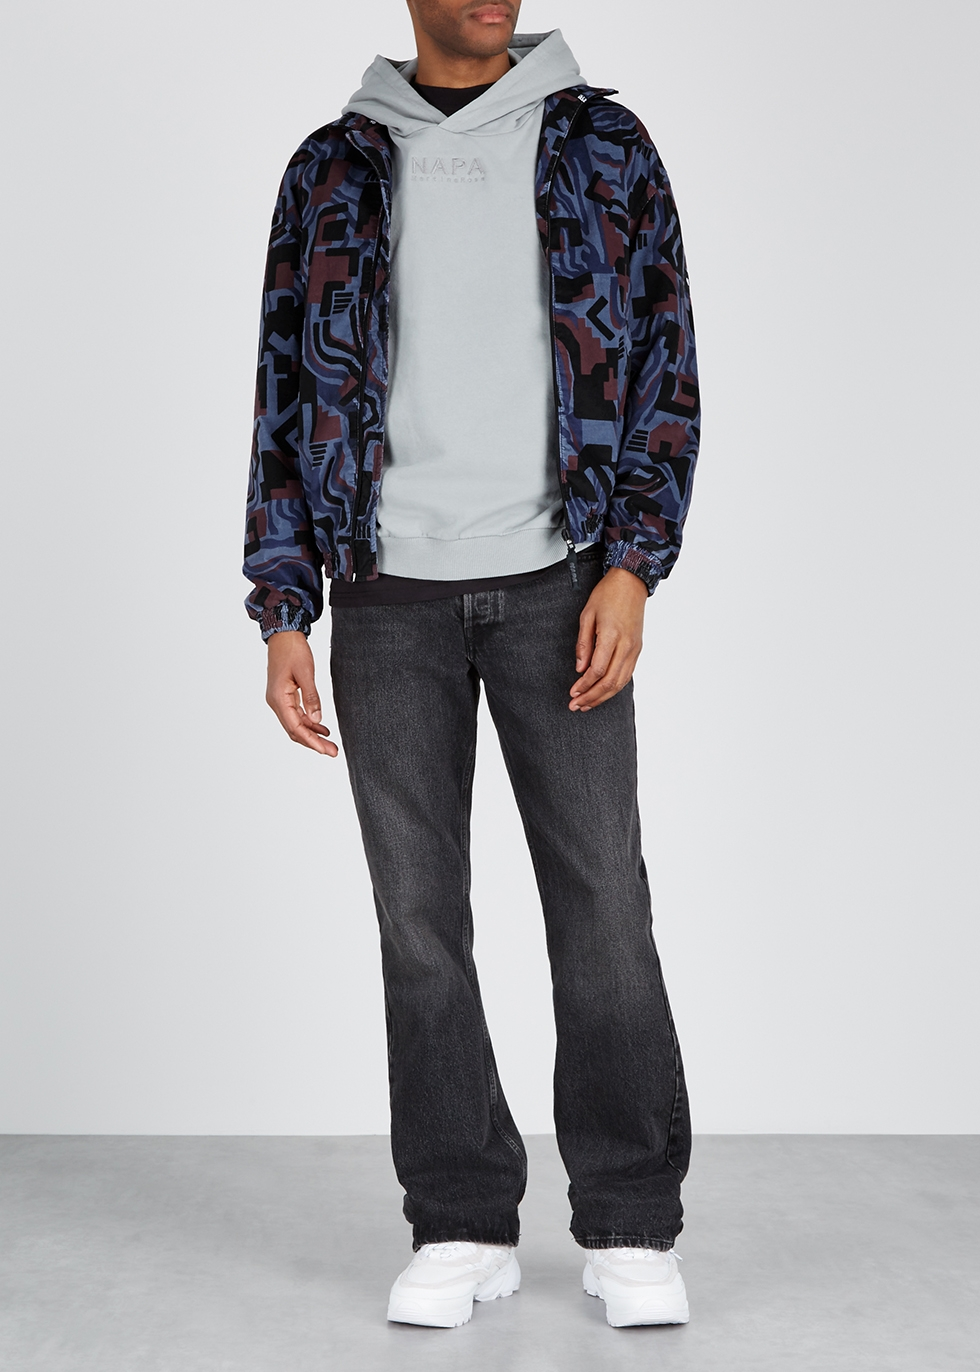 Issarbe printed cotton jacket - Napa by Martine Rose